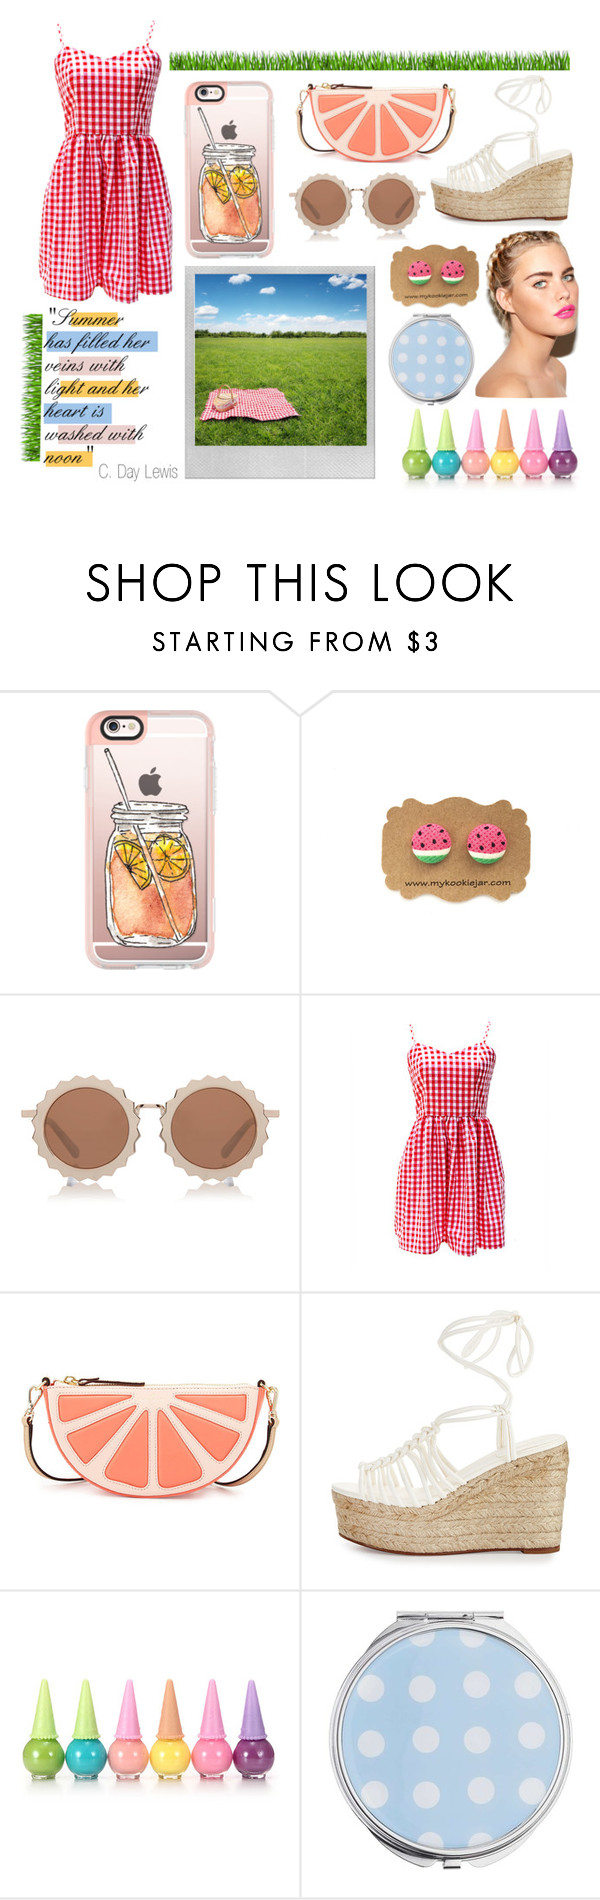 """Summer Days"" by cool7677m ❤ liked on Polyvore featuring Casetify, House of Holland, Kate Spade, Chloé, Polaroid, Miss Selfridge, katespade, MissSelfridge, chloe and houseofholland"